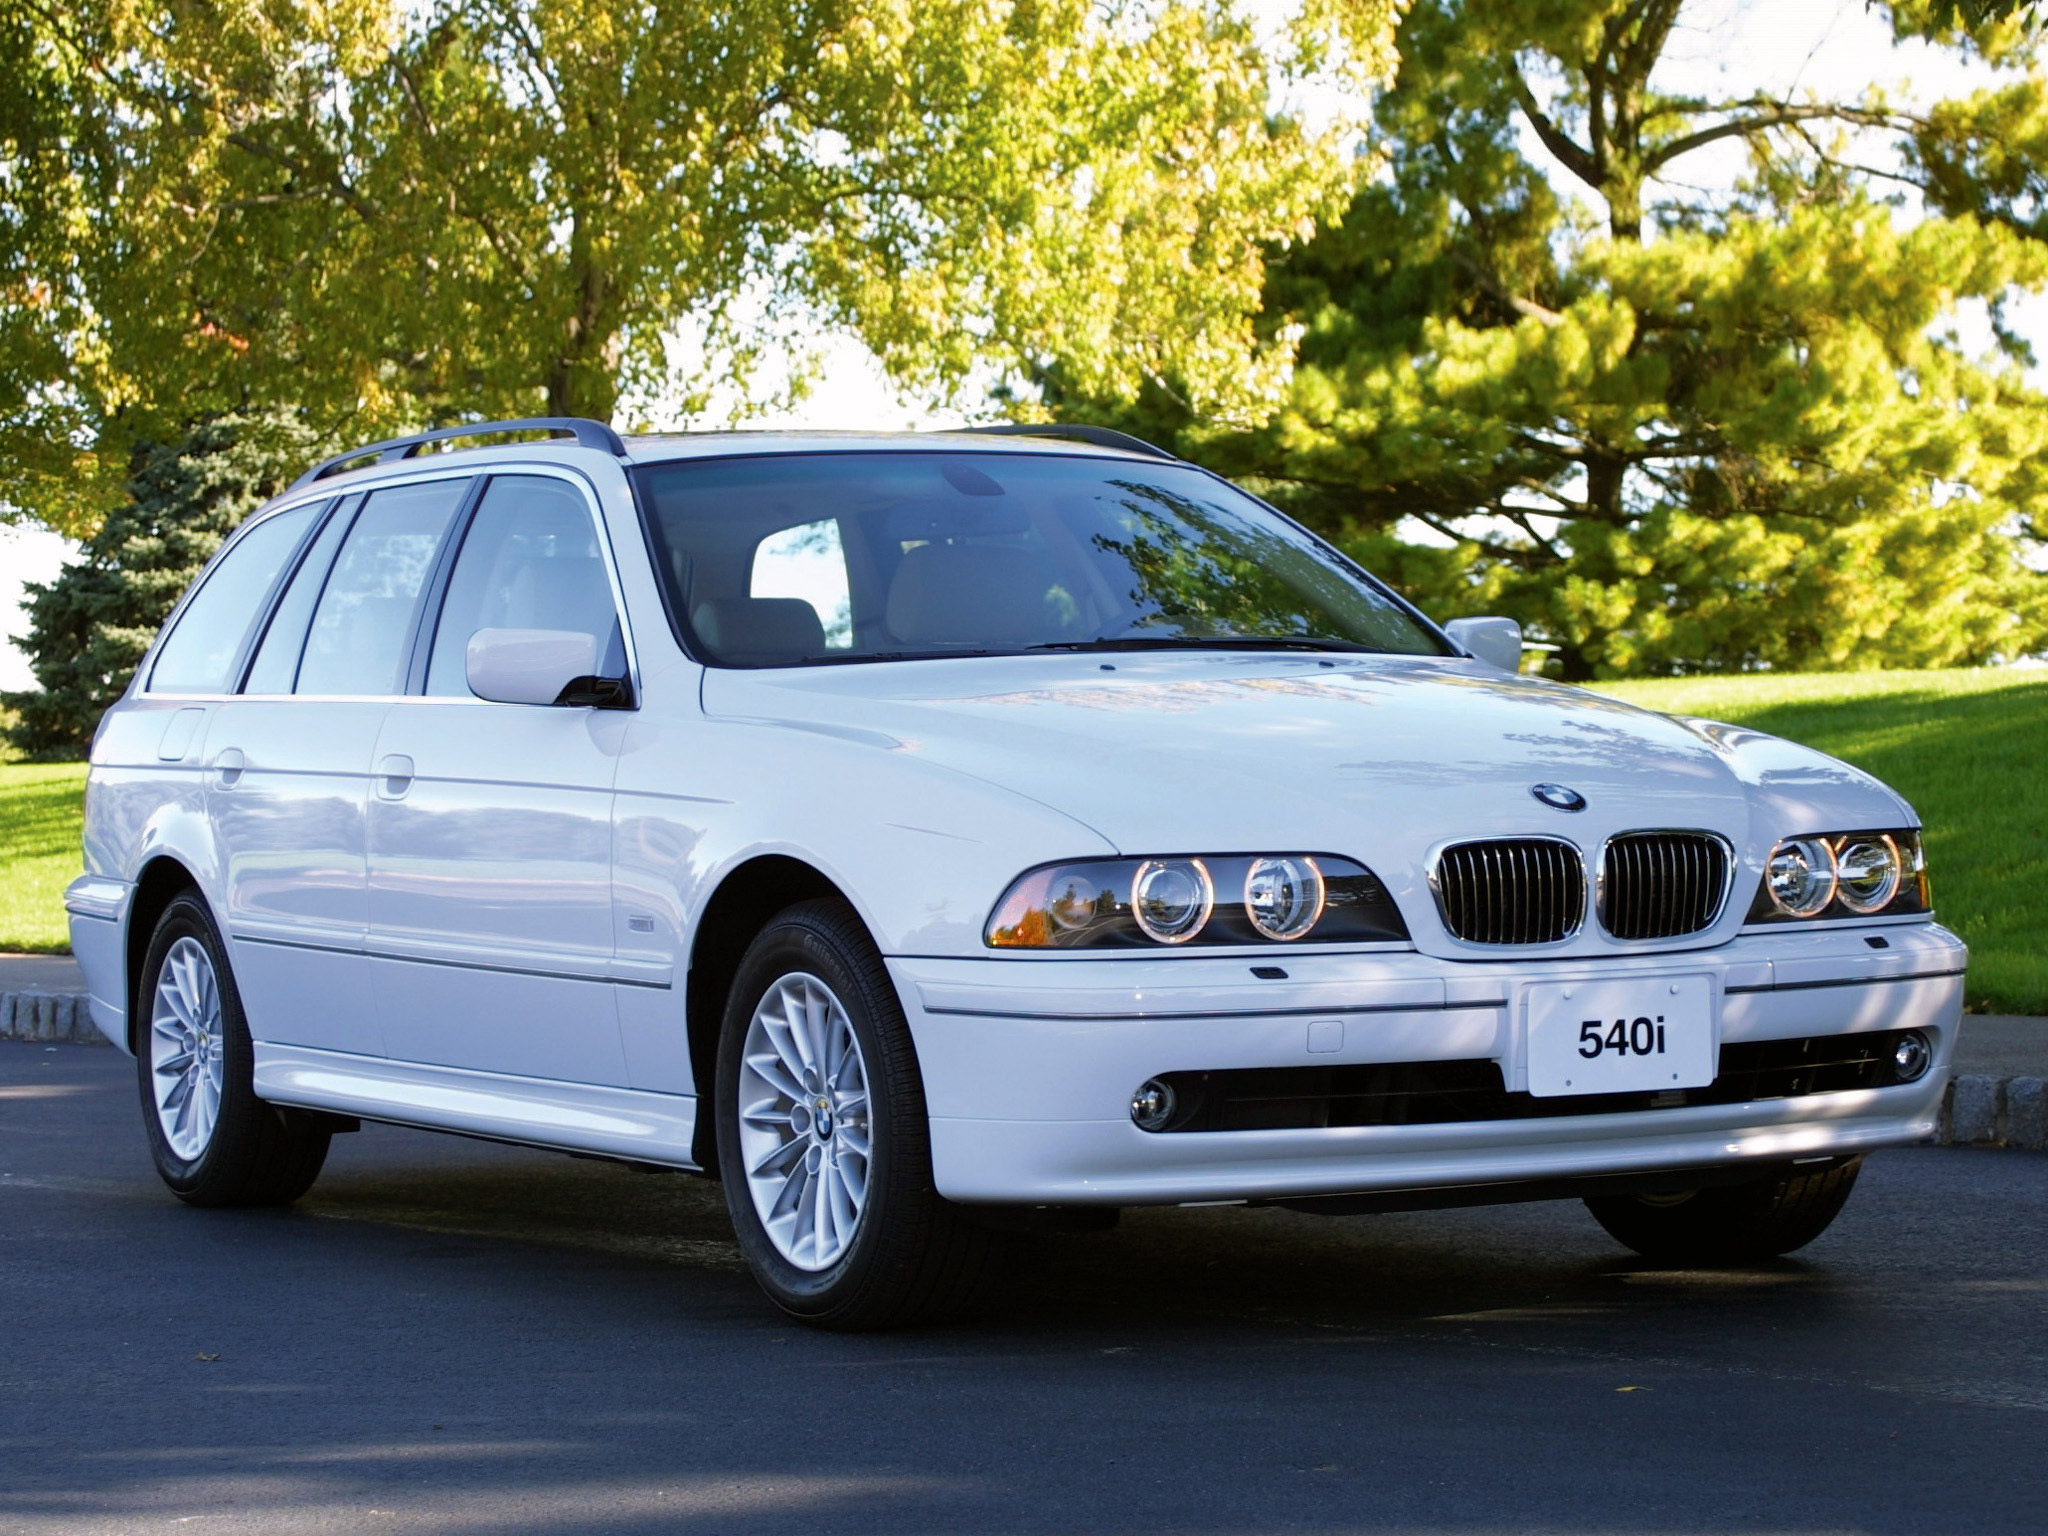 1998 bmw 5er touring e39 pictures information and specs auto. Black Bedroom Furniture Sets. Home Design Ideas